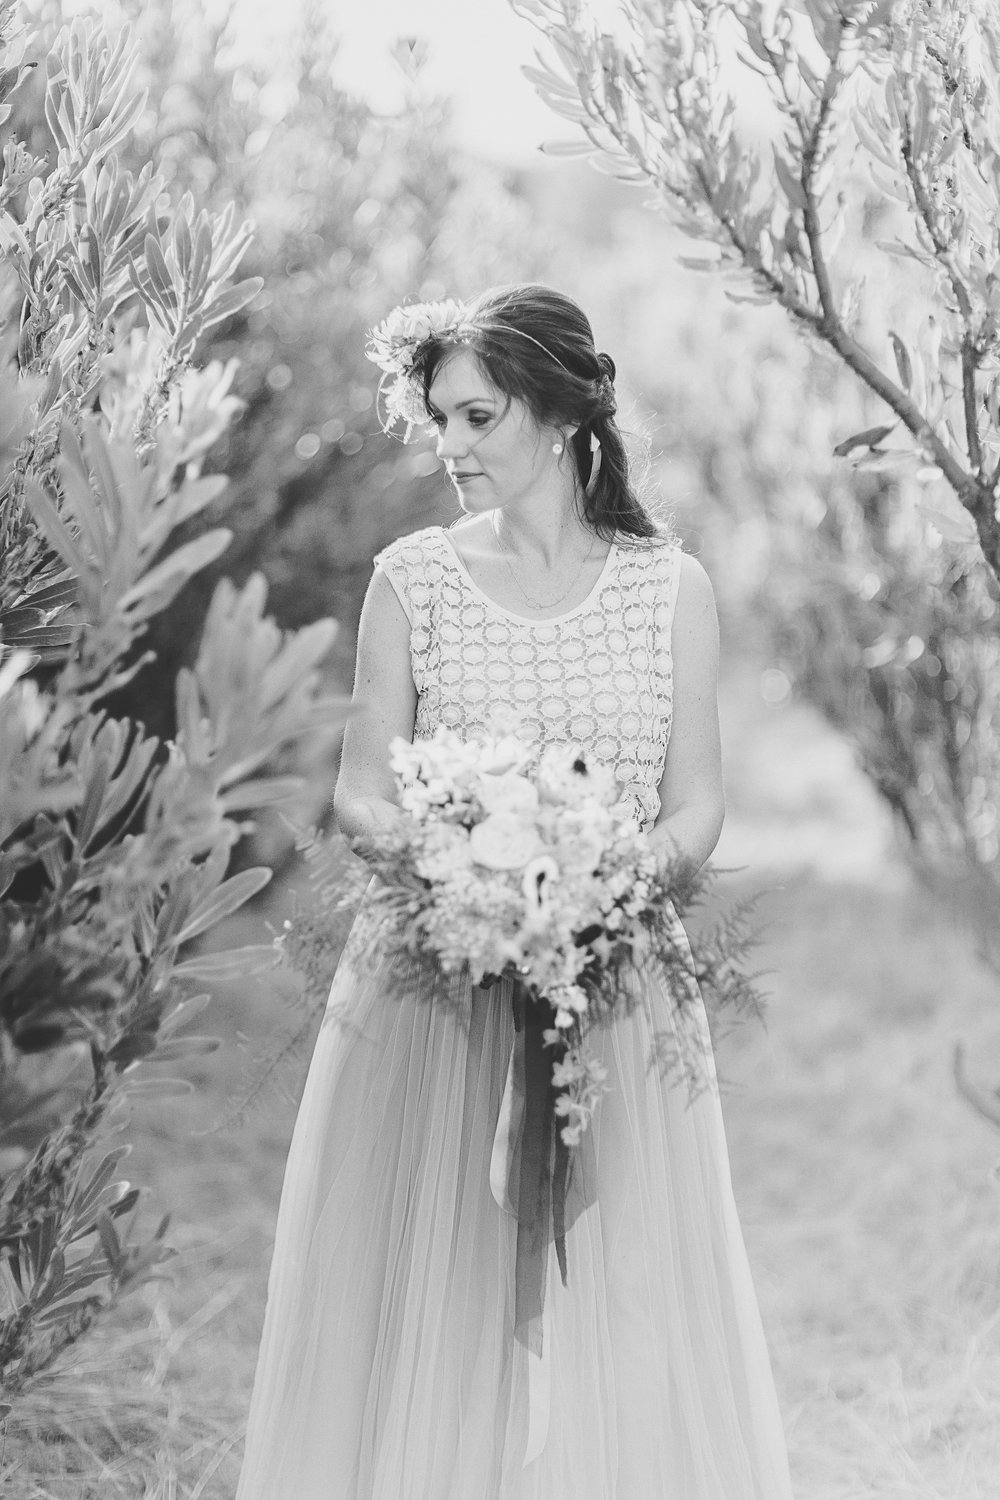 South africa wedding photographer clareece smit photography31.jpg